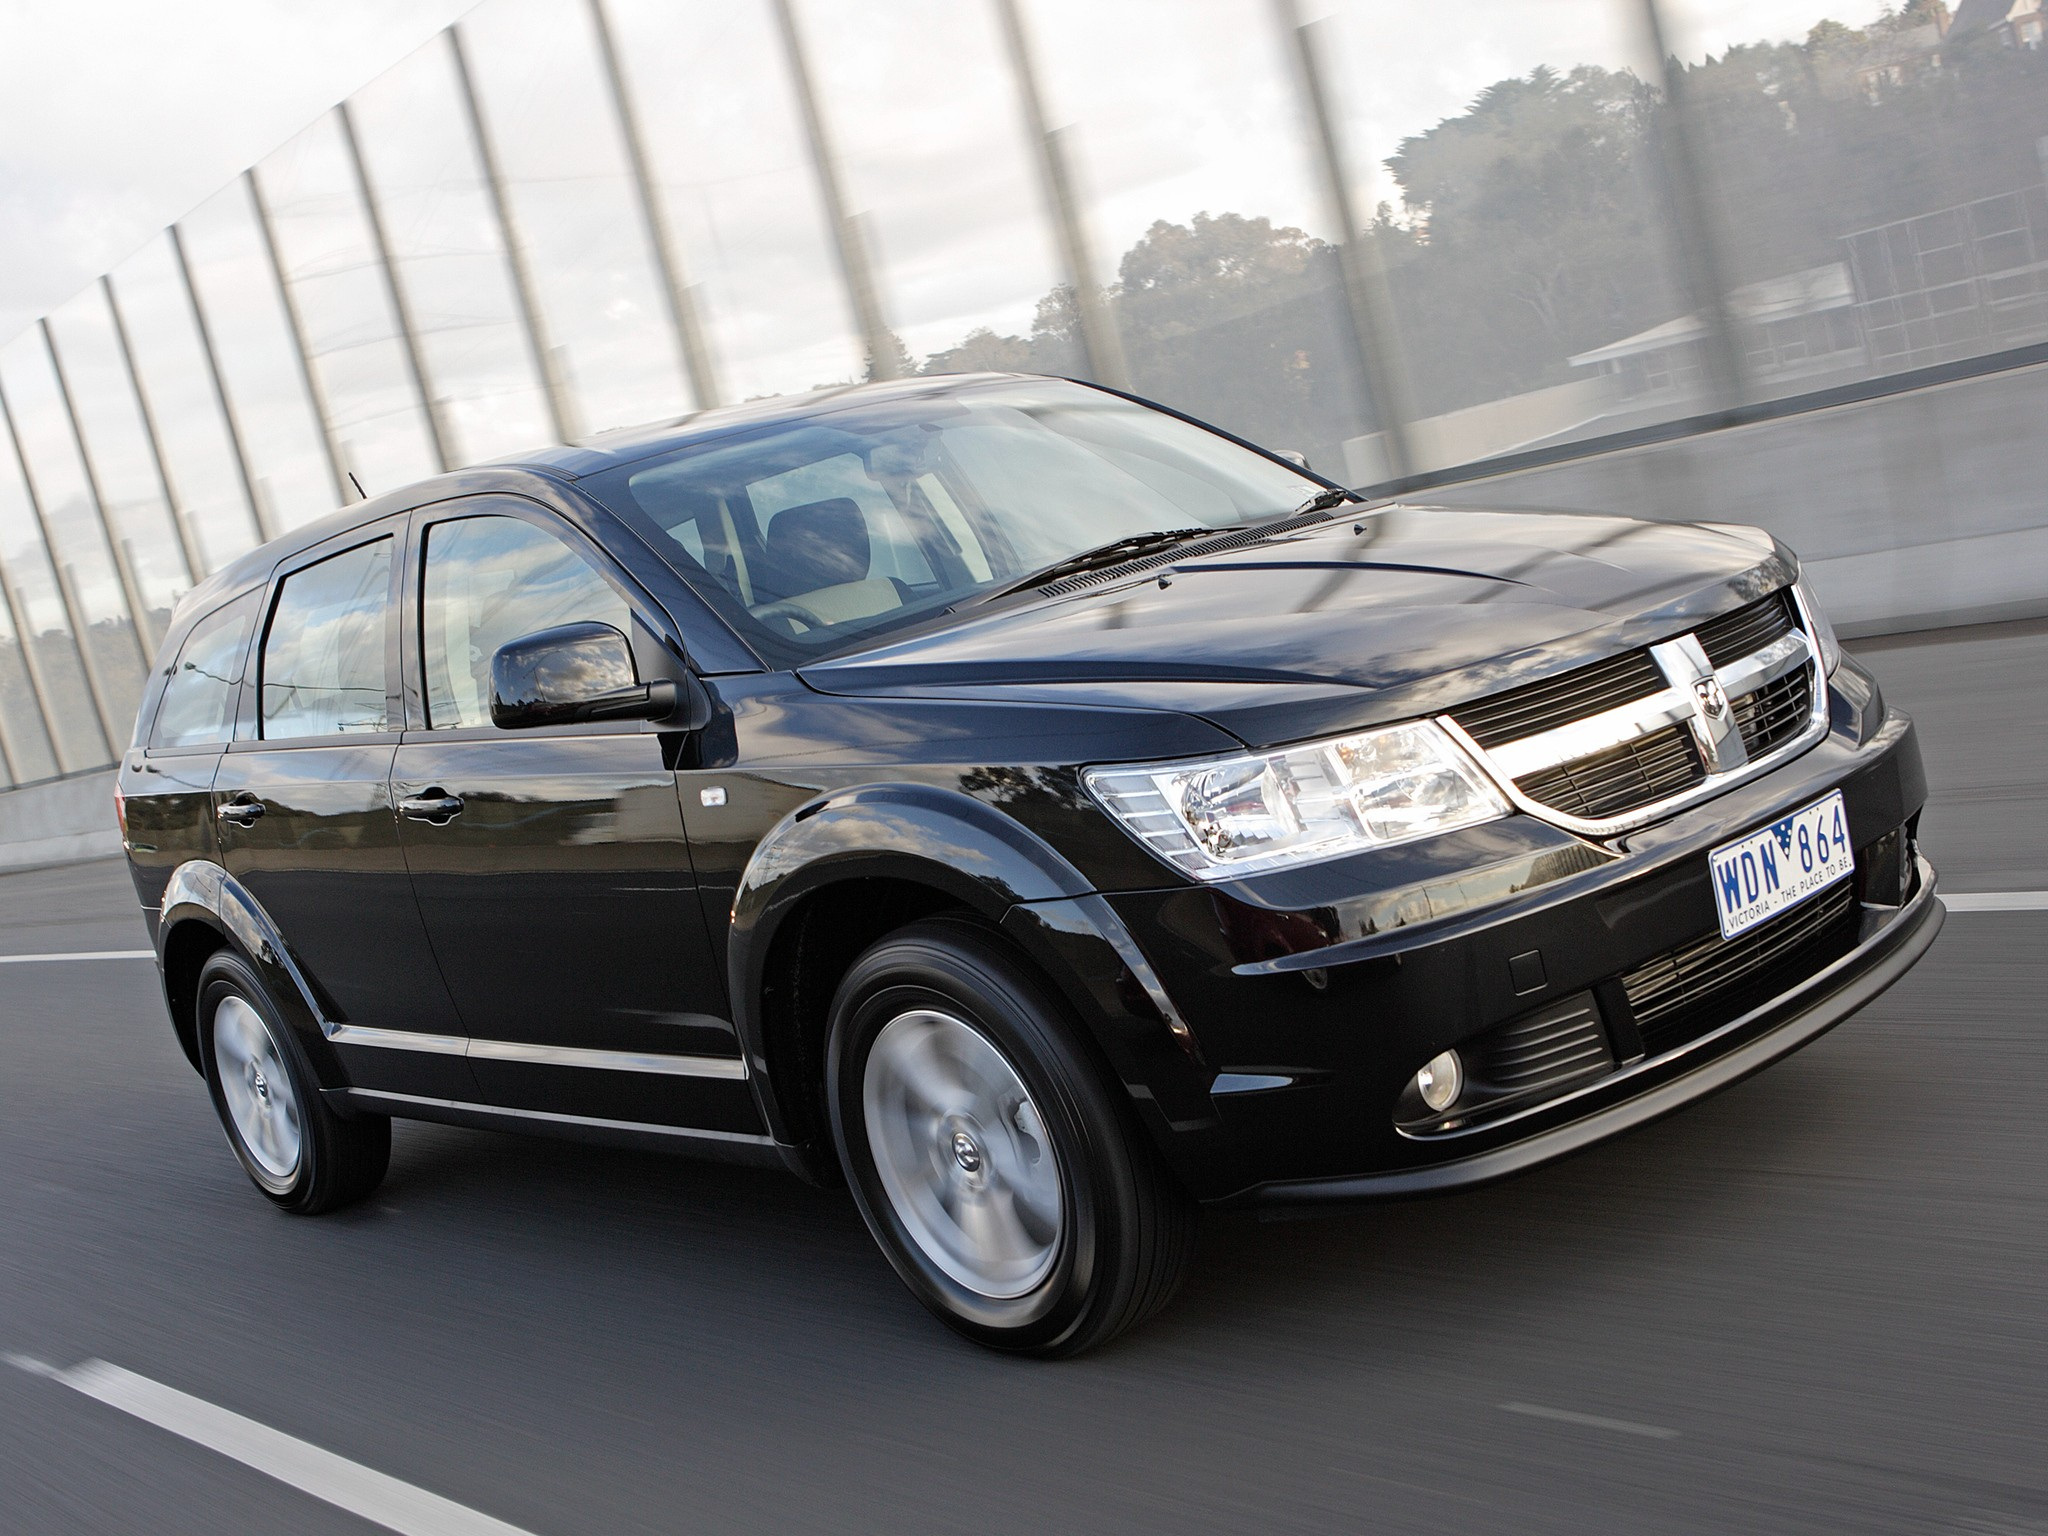 DODGE Journey - 2008, 2009, 2010, 2011 - autoevolution